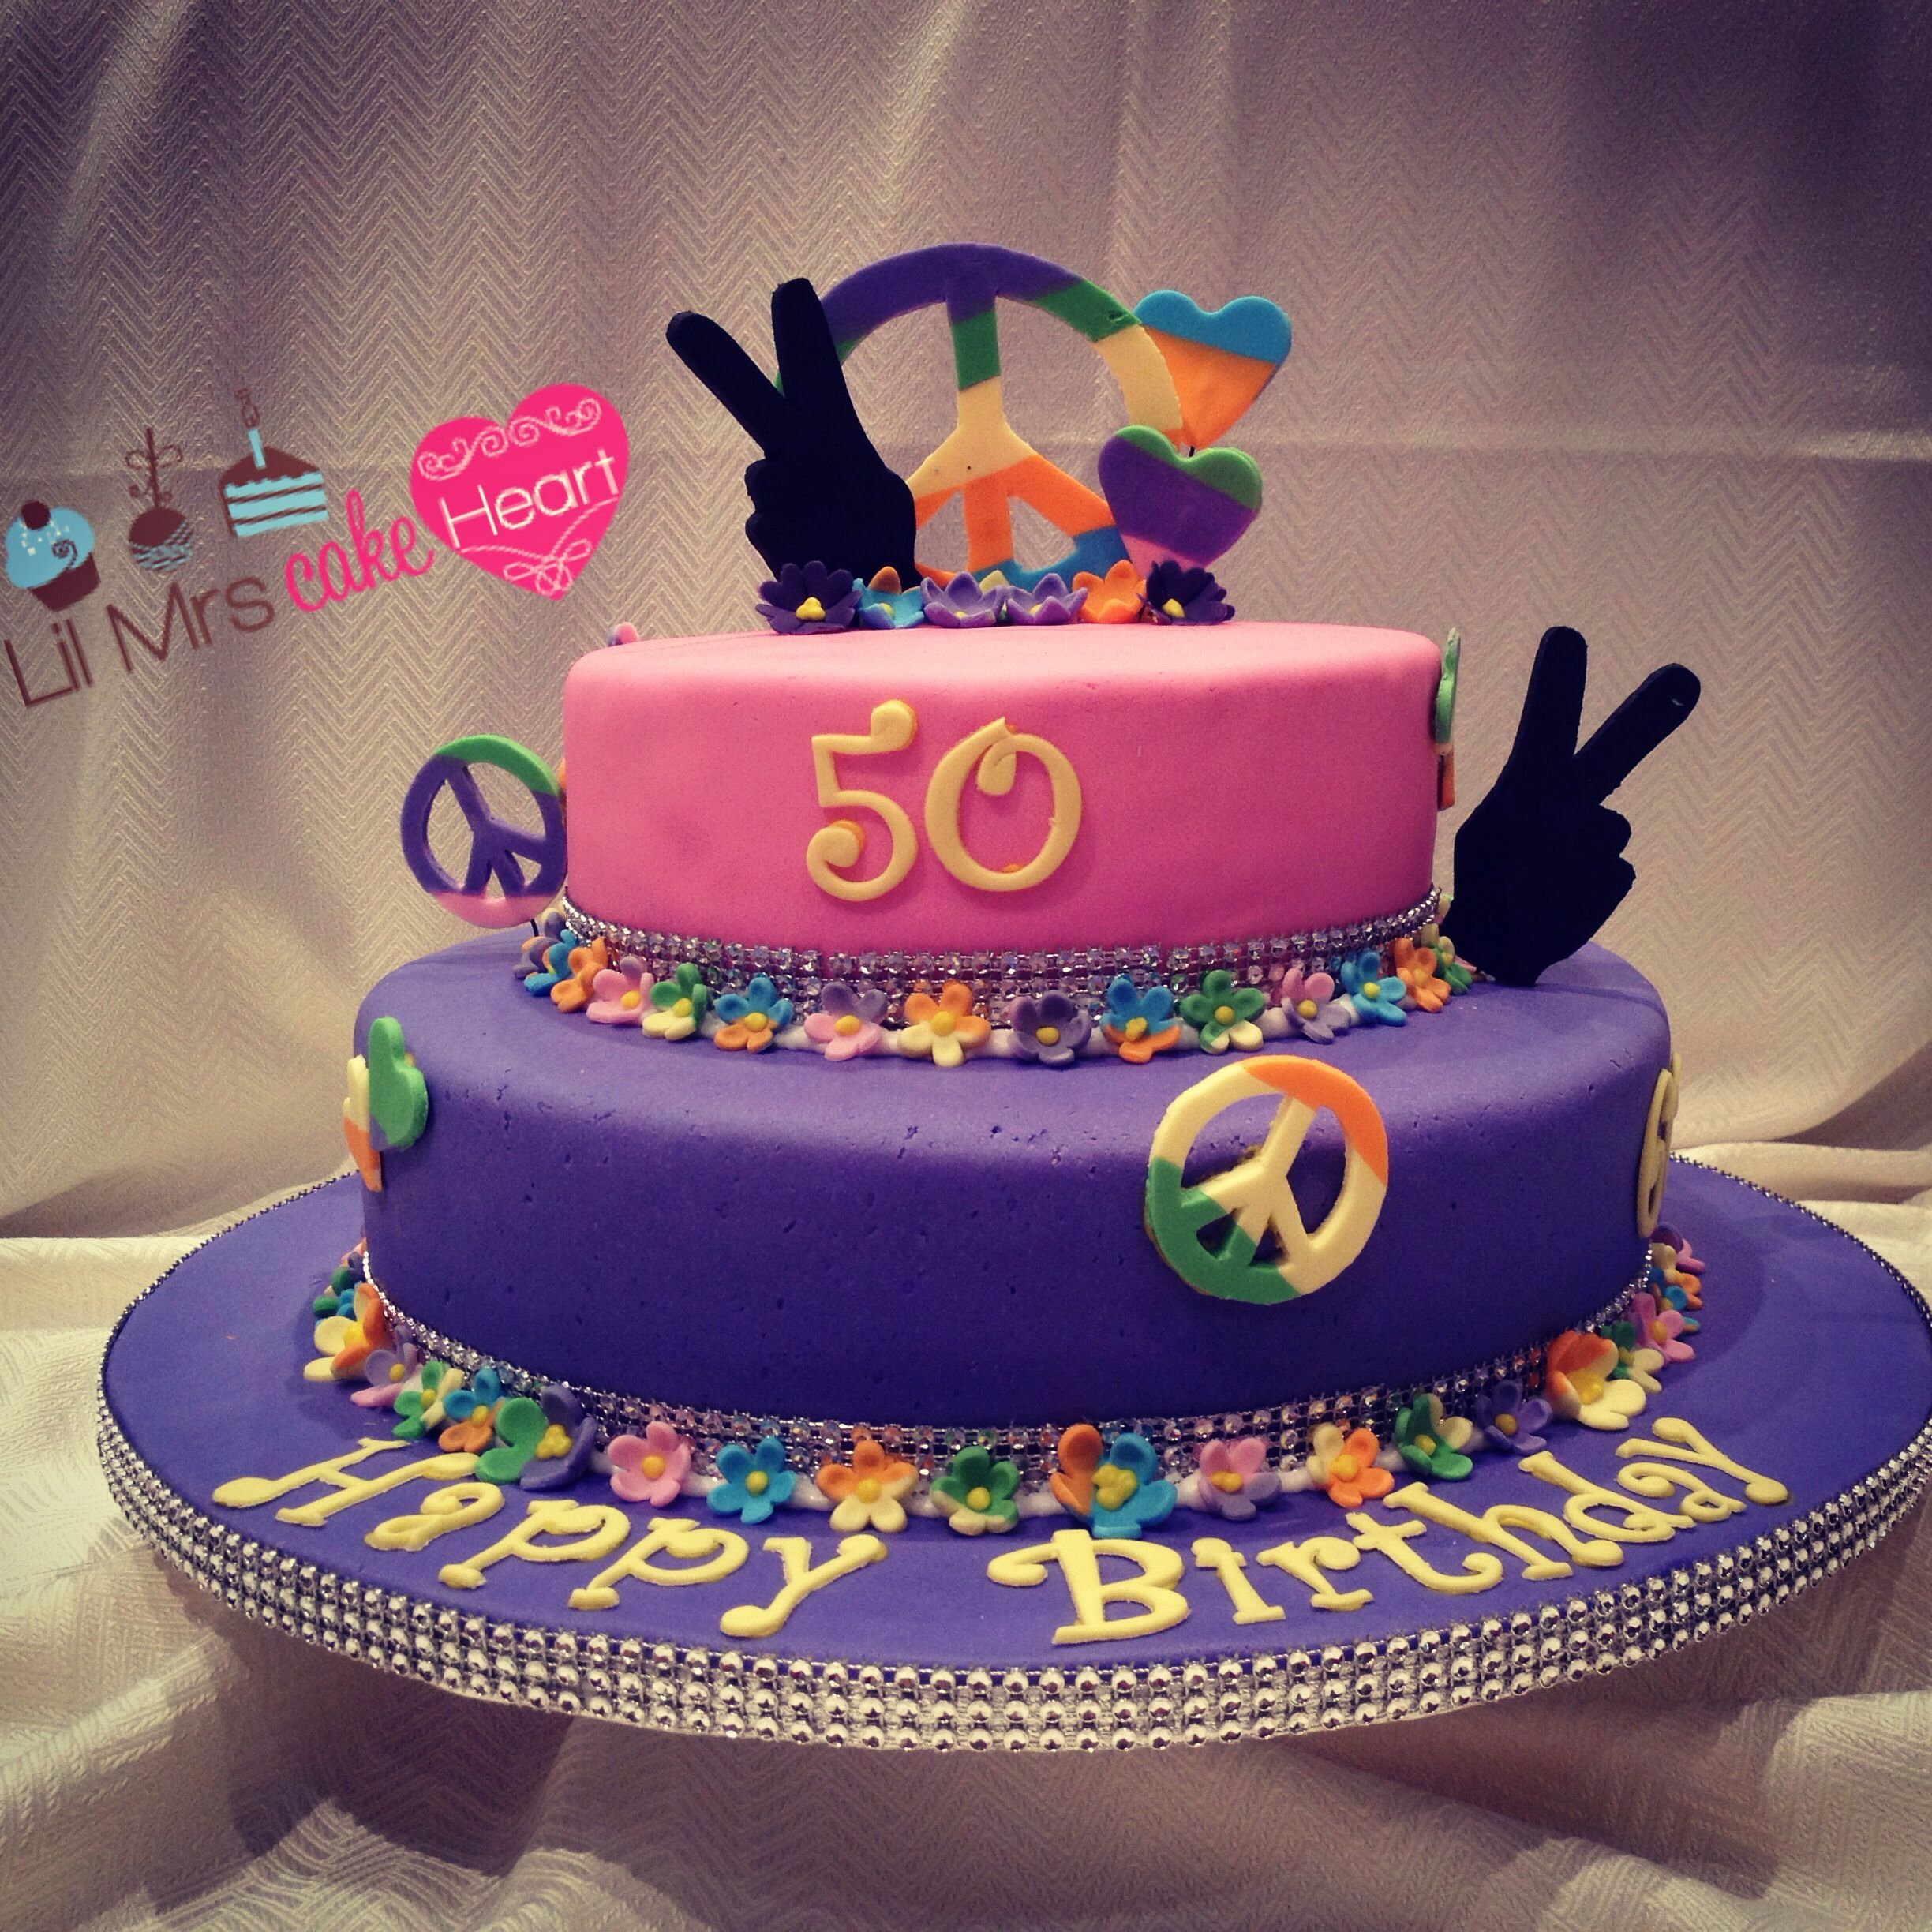 Pin By Jenni Scarbrough On Cakes Pinterest 60th Birthday Cakes